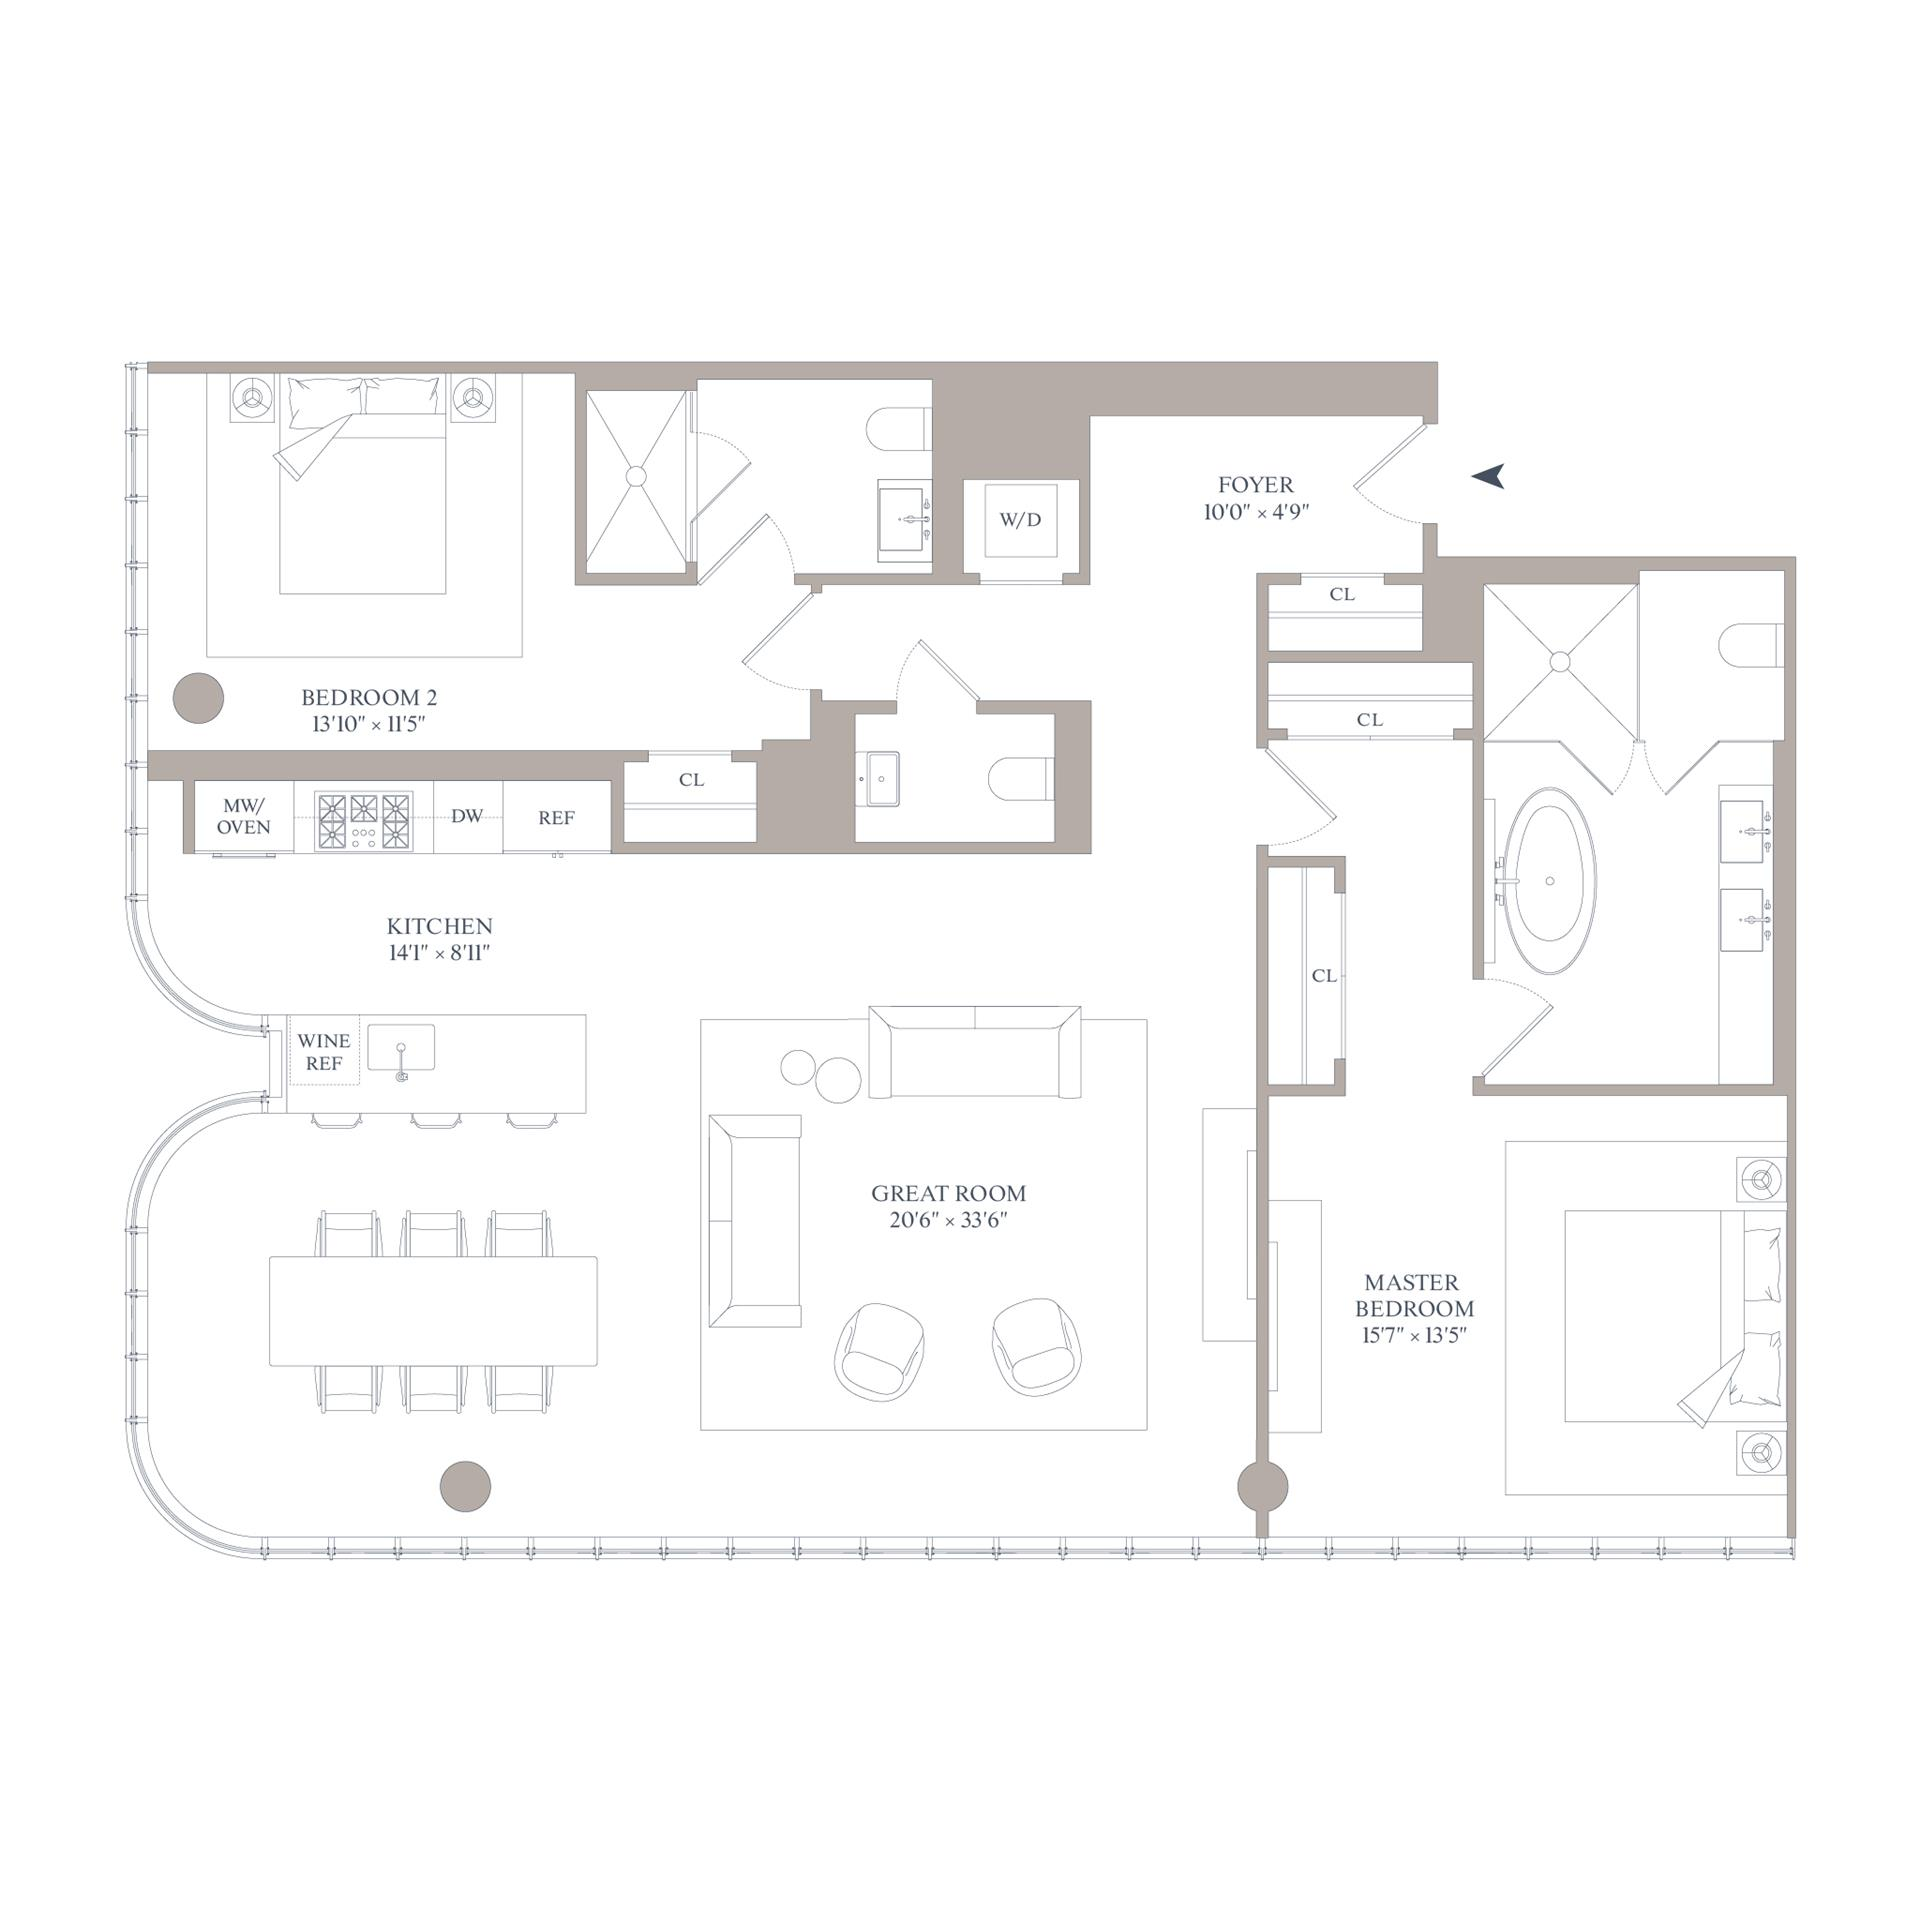 Floor plan of 565 Broome St, S12C - SoHo - Nolita, New York